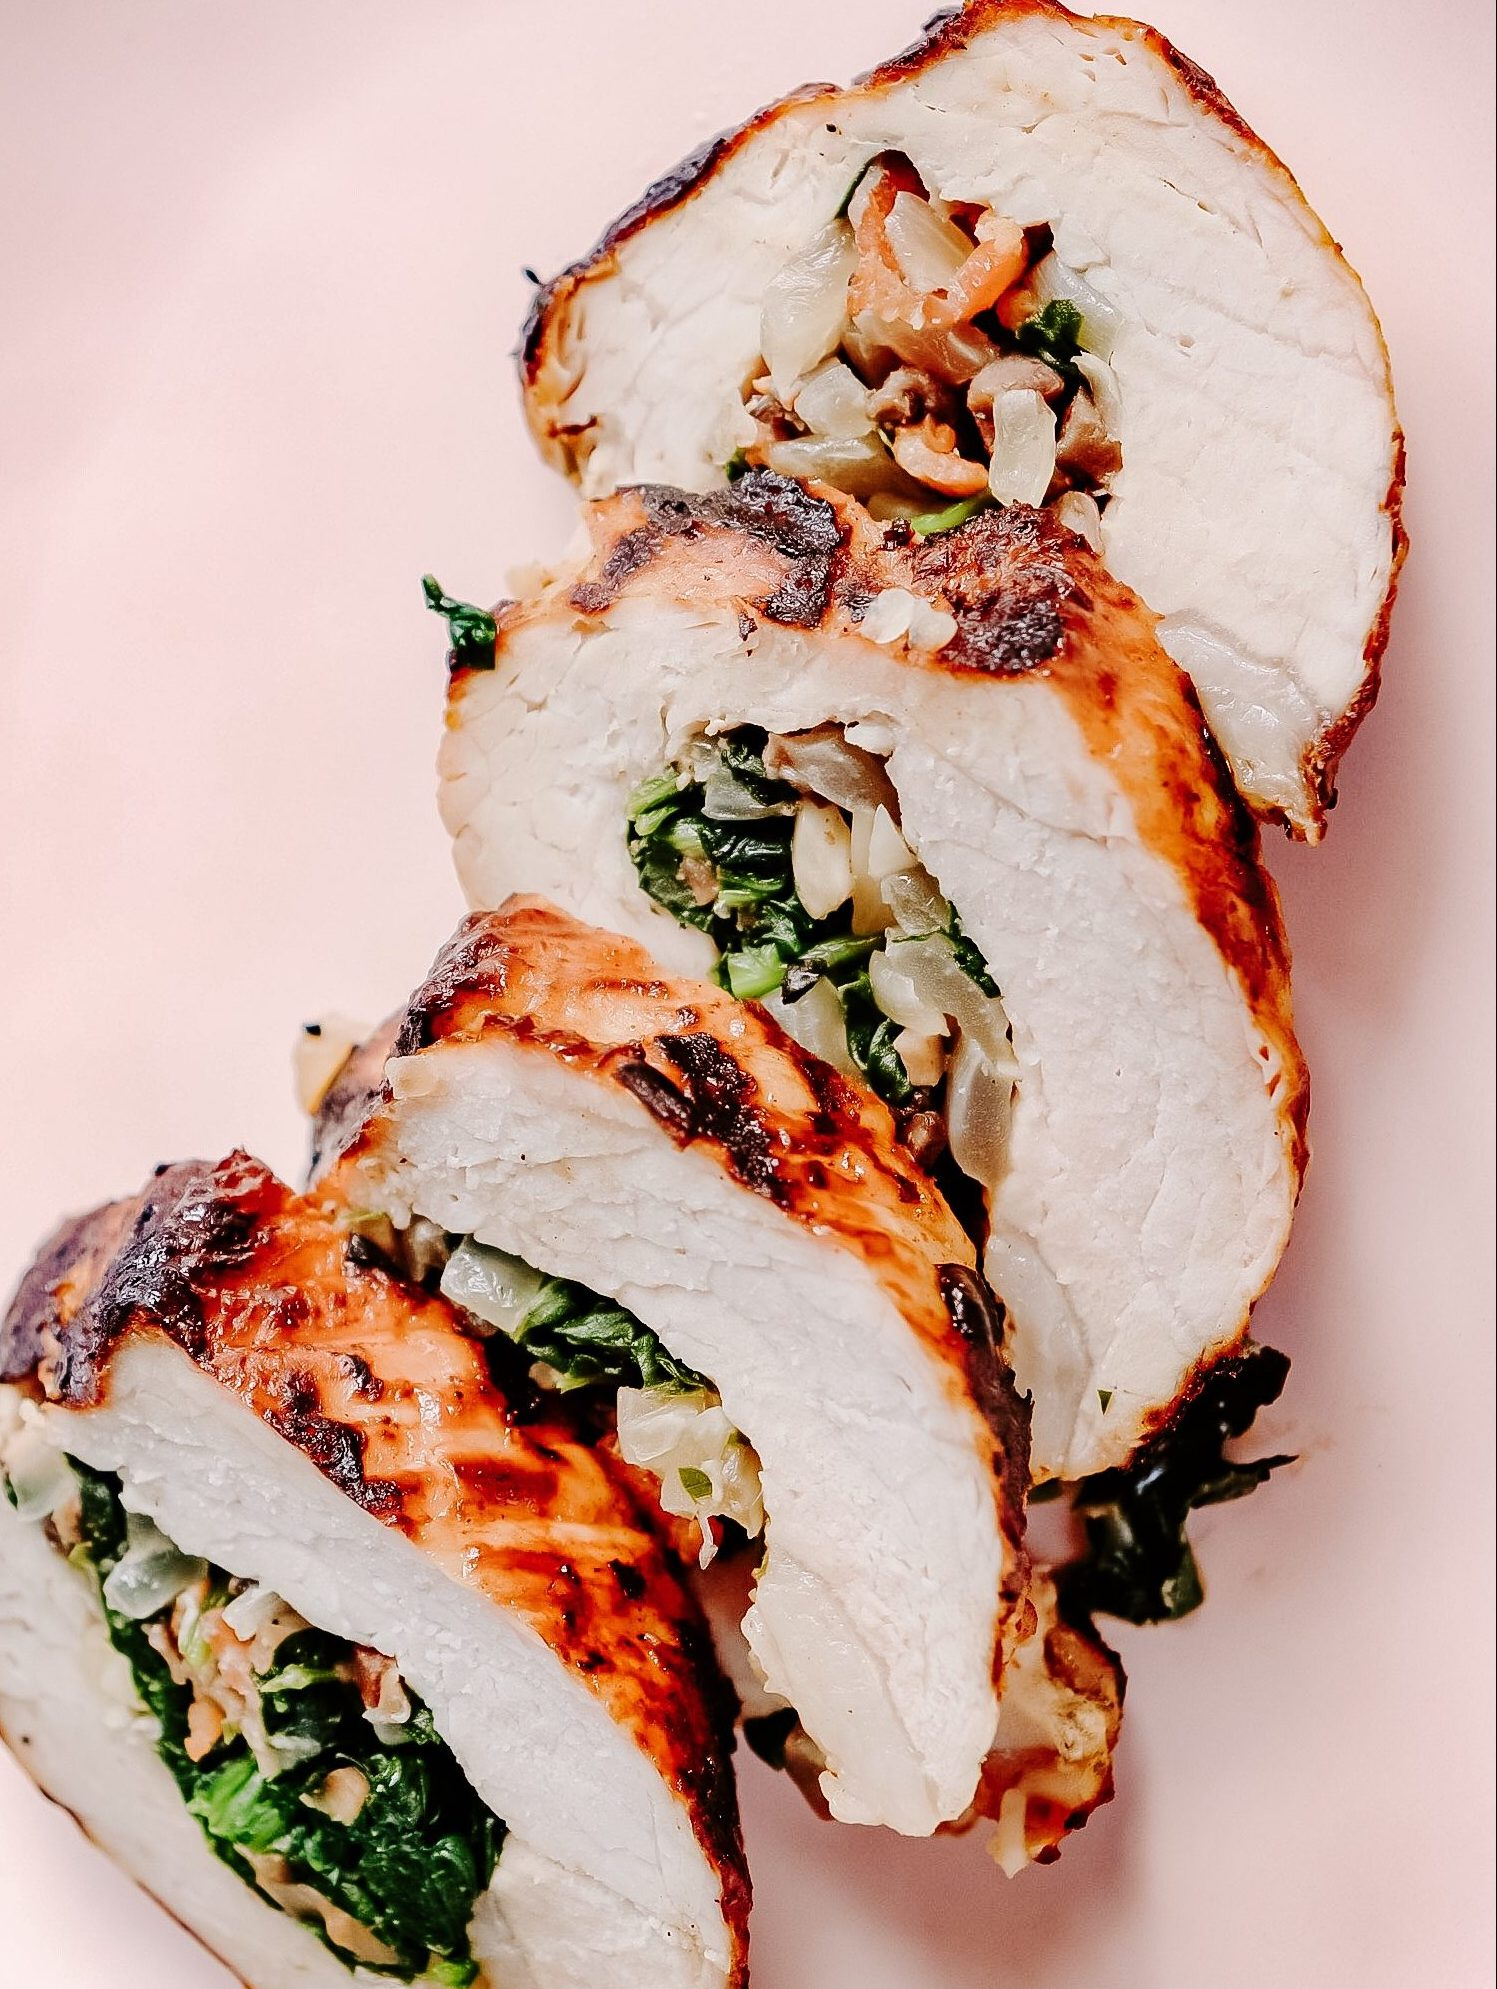 Best Grilled Garlic Herb Pork Loin (For 2 person)